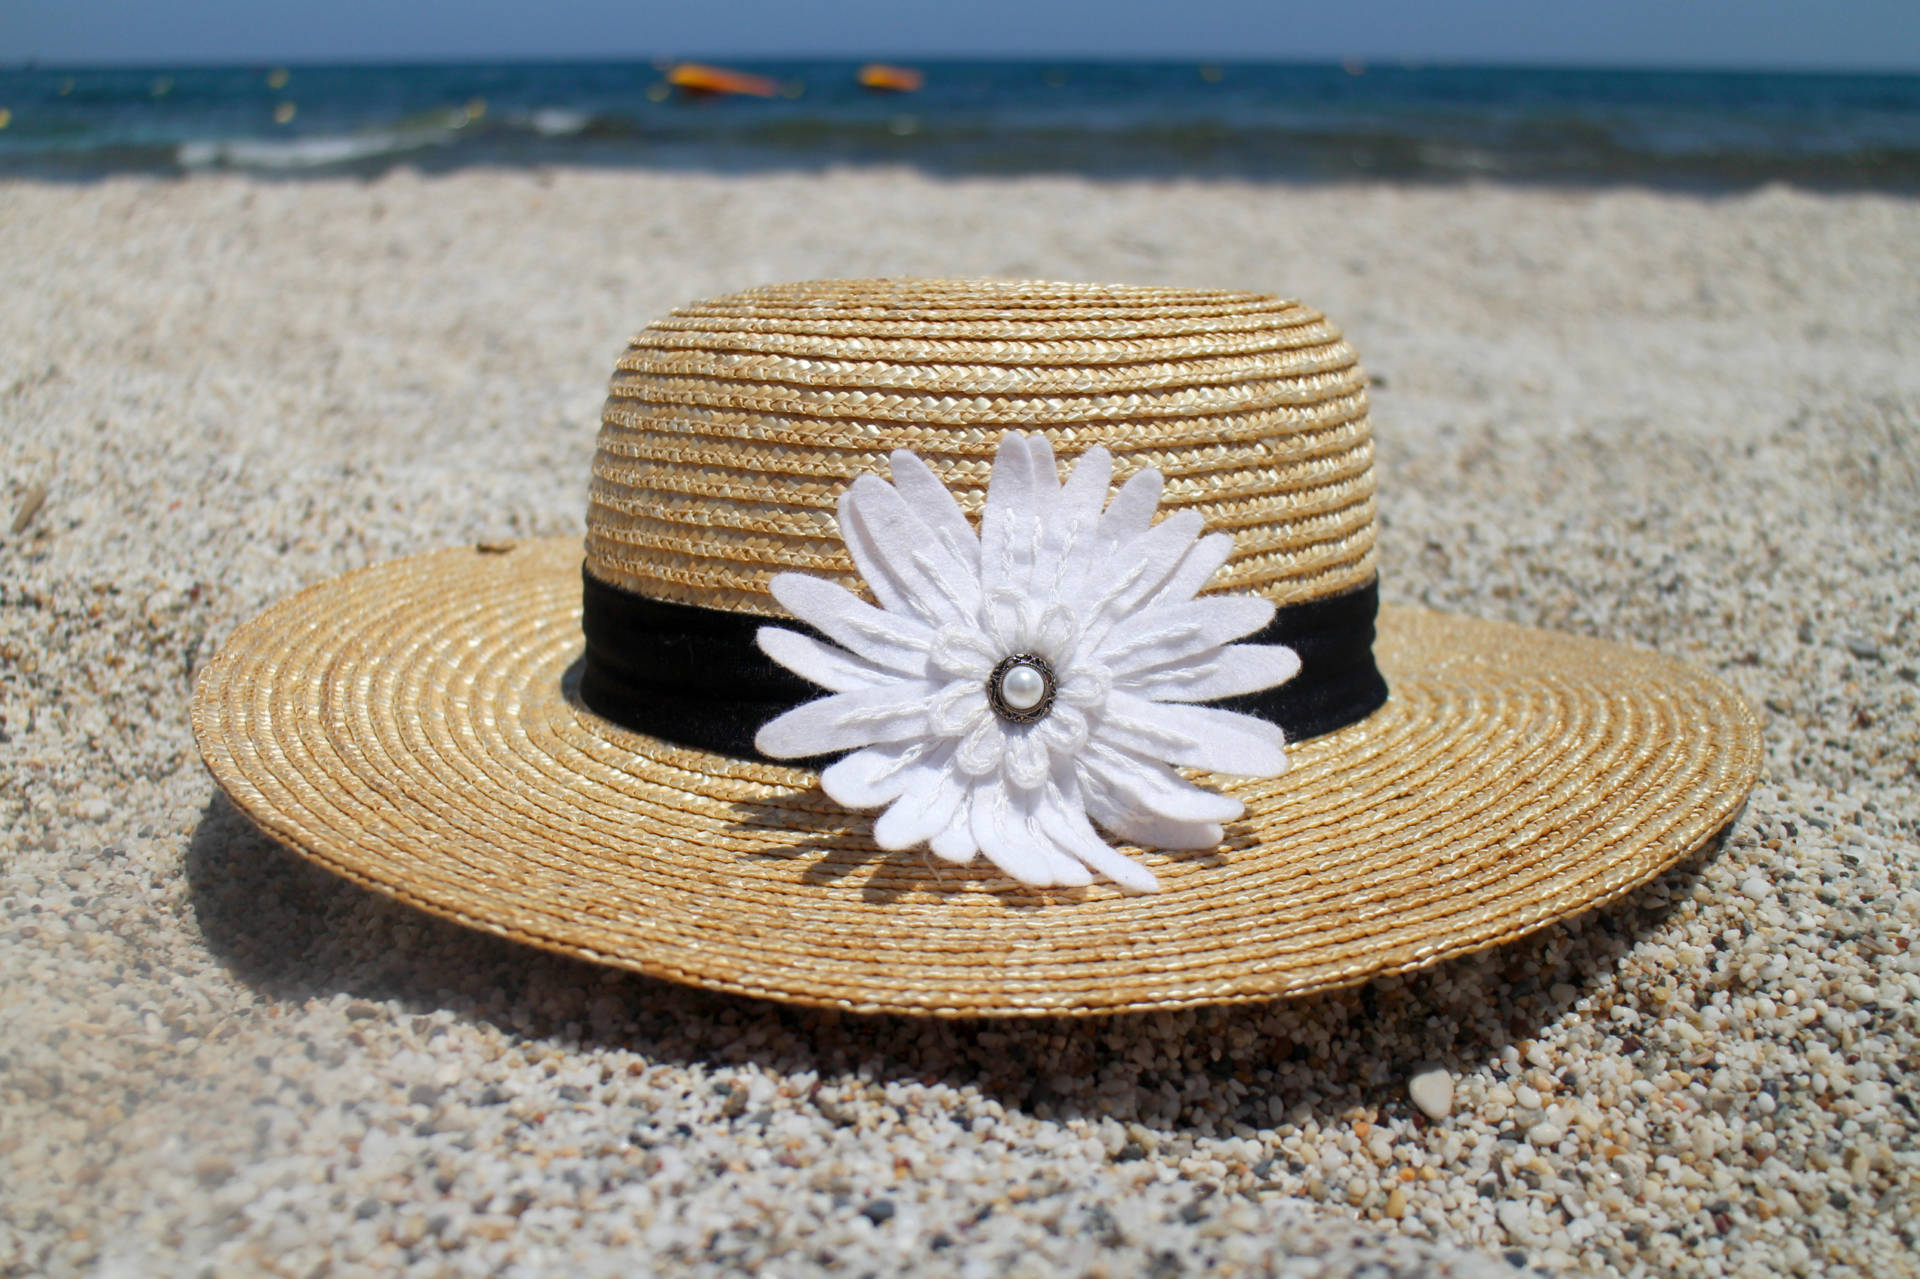 Daisy Embroidered Felt Flower Brooch by Eliston Button on Straw Hat on the Beach - Daisy in the Sunshine at www.elistonbutton.com - Eliston Button - That Crafty Kid – Art, Design, Craft & Adventure.